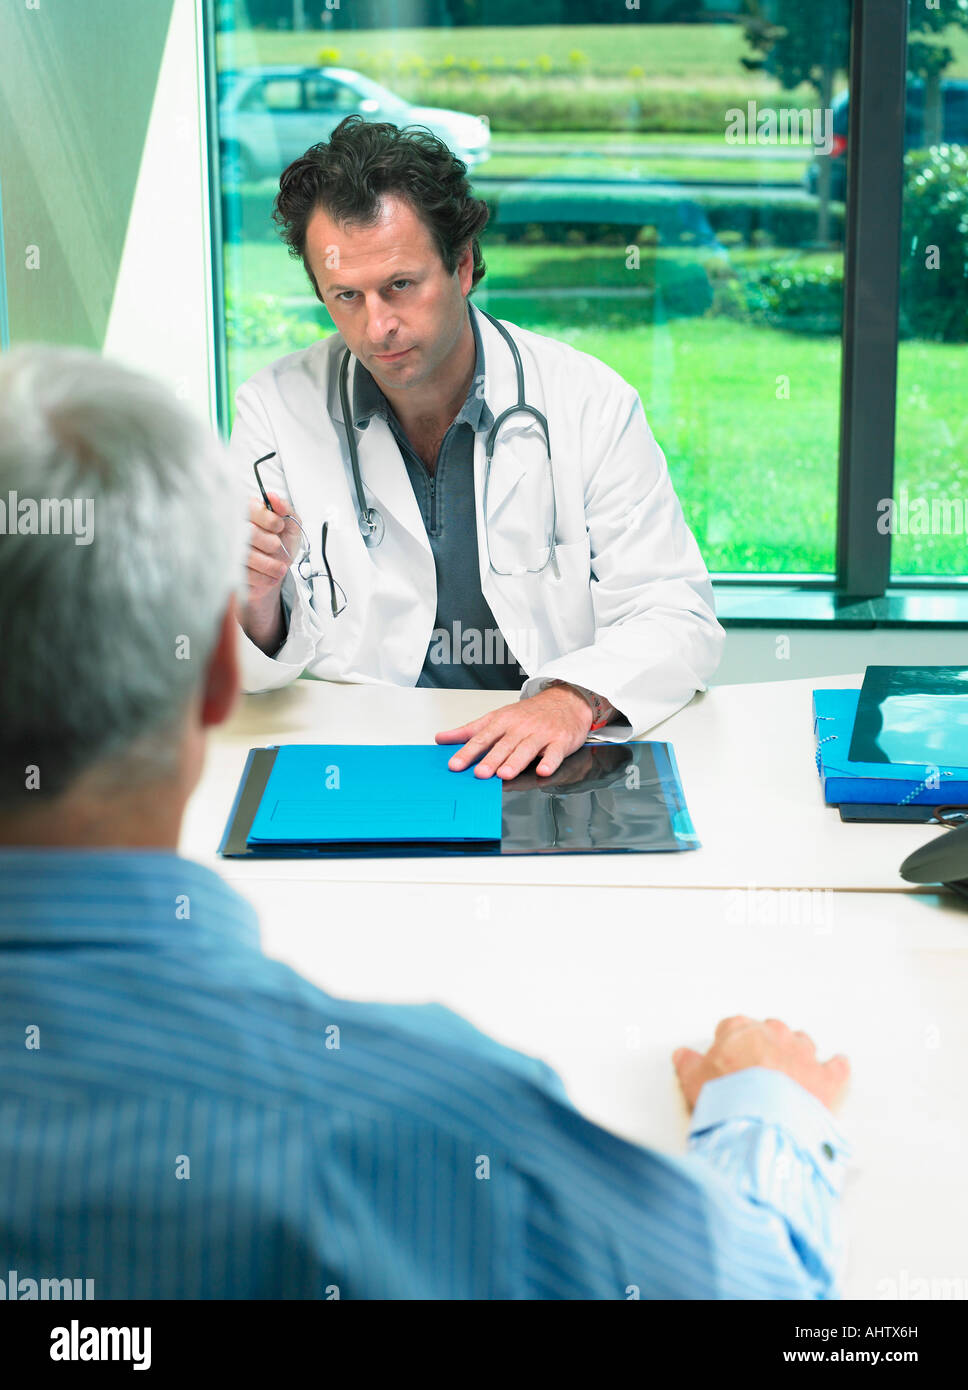 Male doctor at his desk talking with mature male patient. - Stock Image